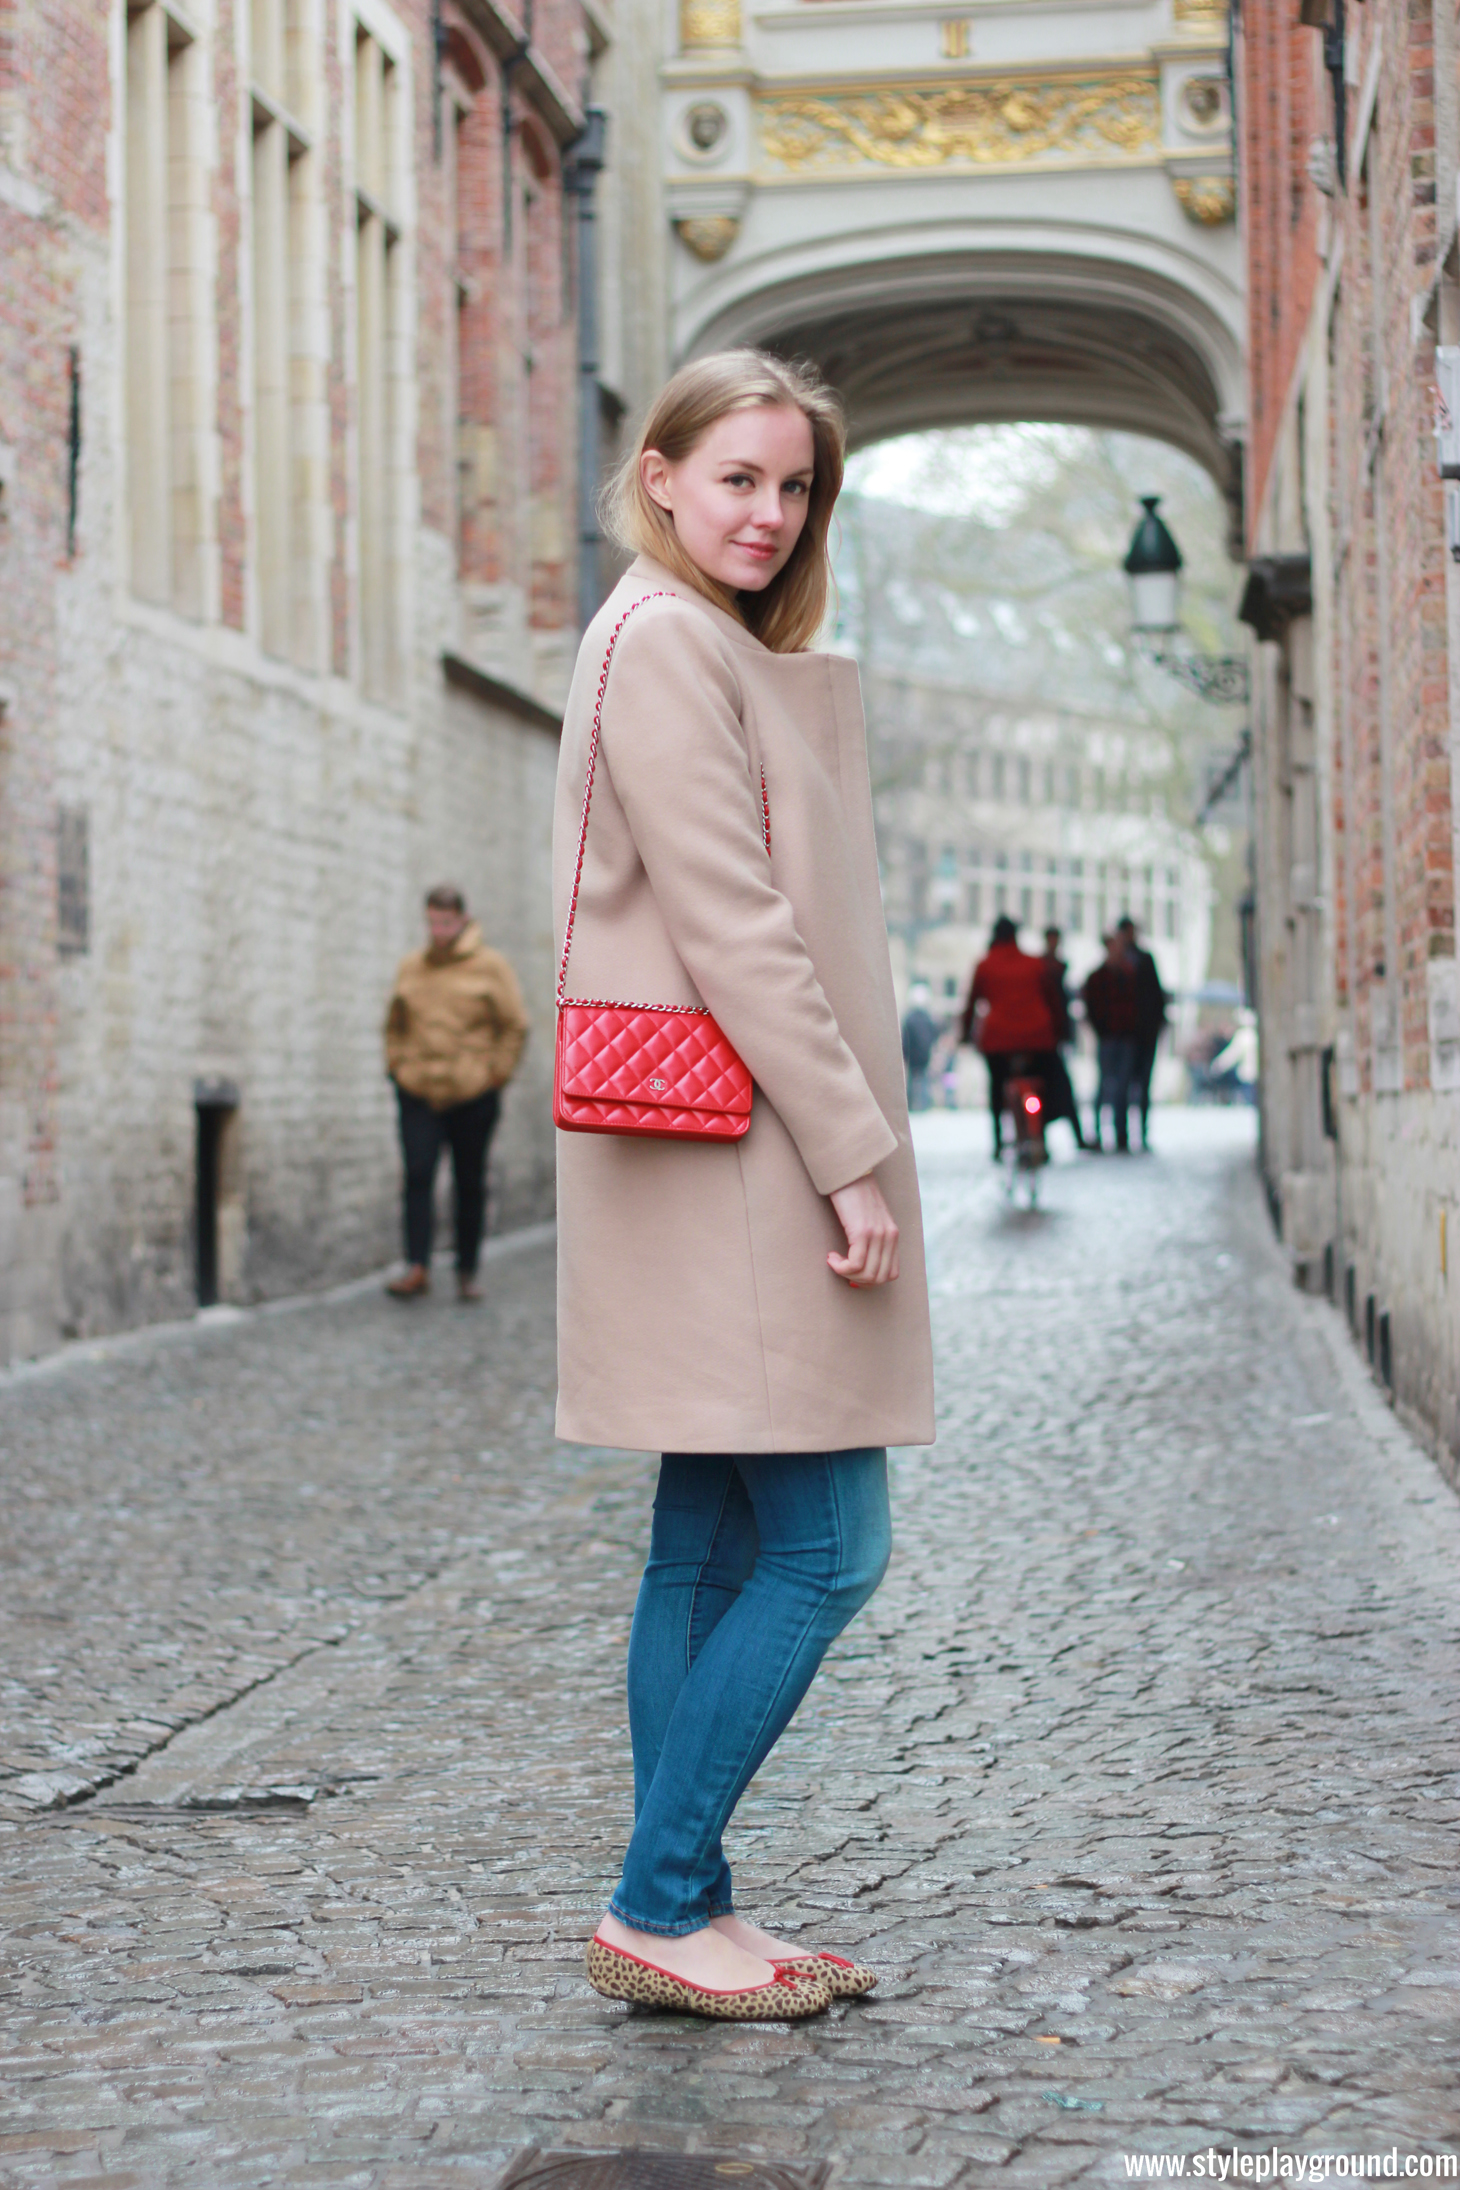 Axelle Blanpain of Style playground is wearing a Zara coat, American Eagle jeggings, French sole flats and Chanel WOC